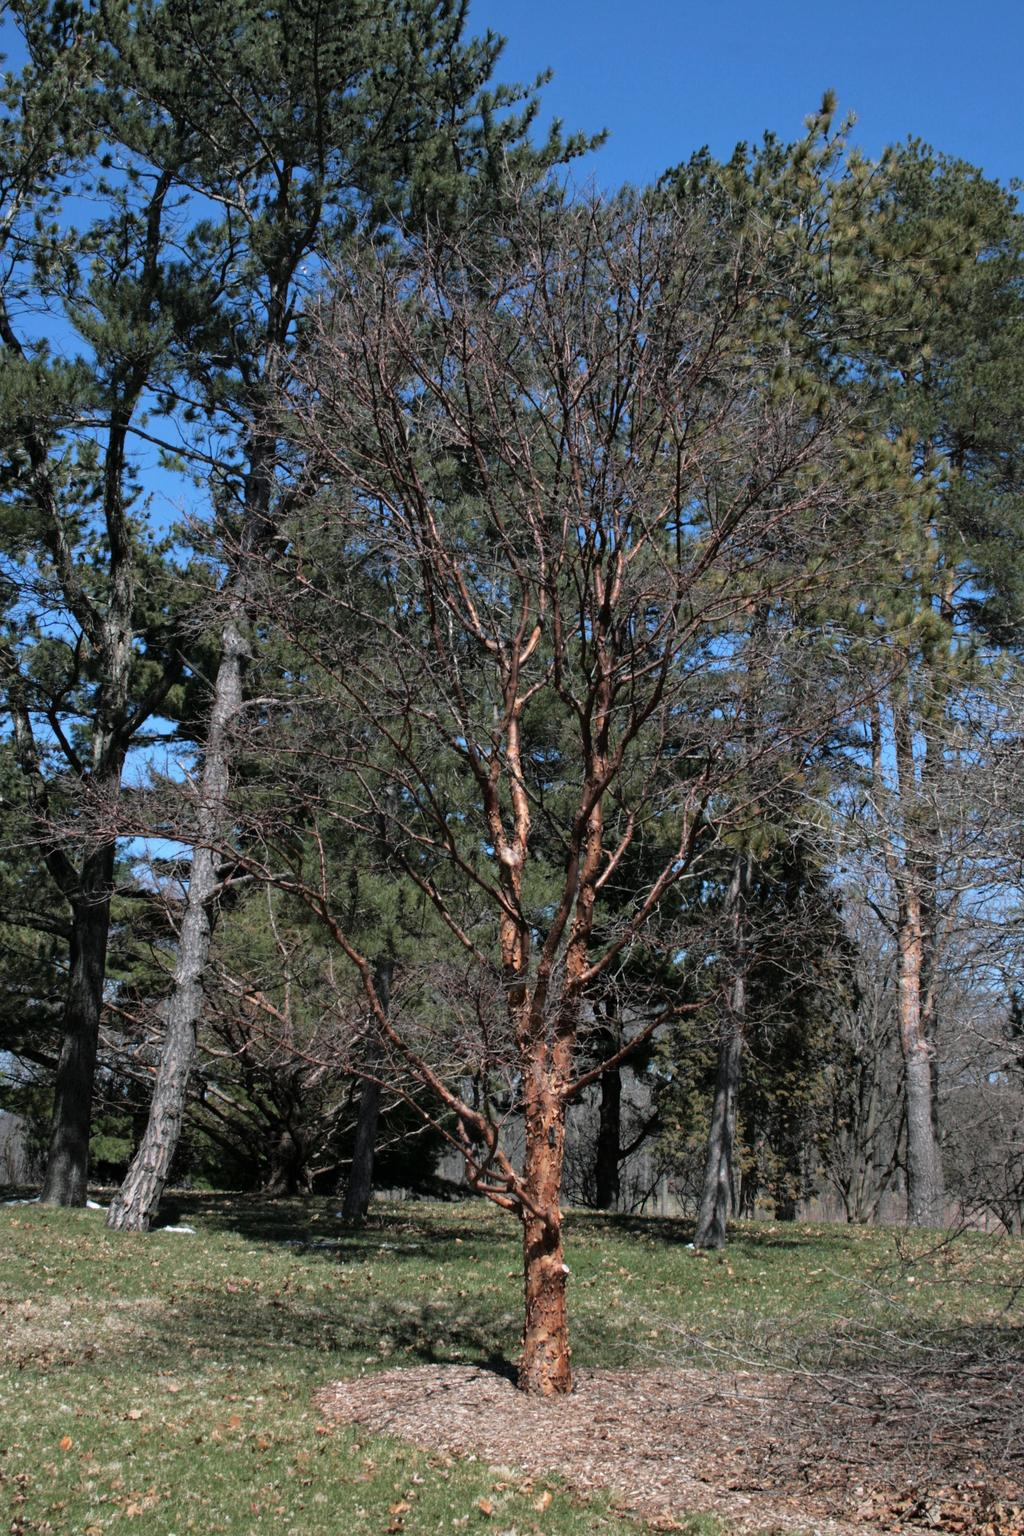 This photograph depicts a paper-barked maple. In the picture, you can see the entire tree. The tree does not have any leaves and the bark is a light brown. There are also additional trees in the background.